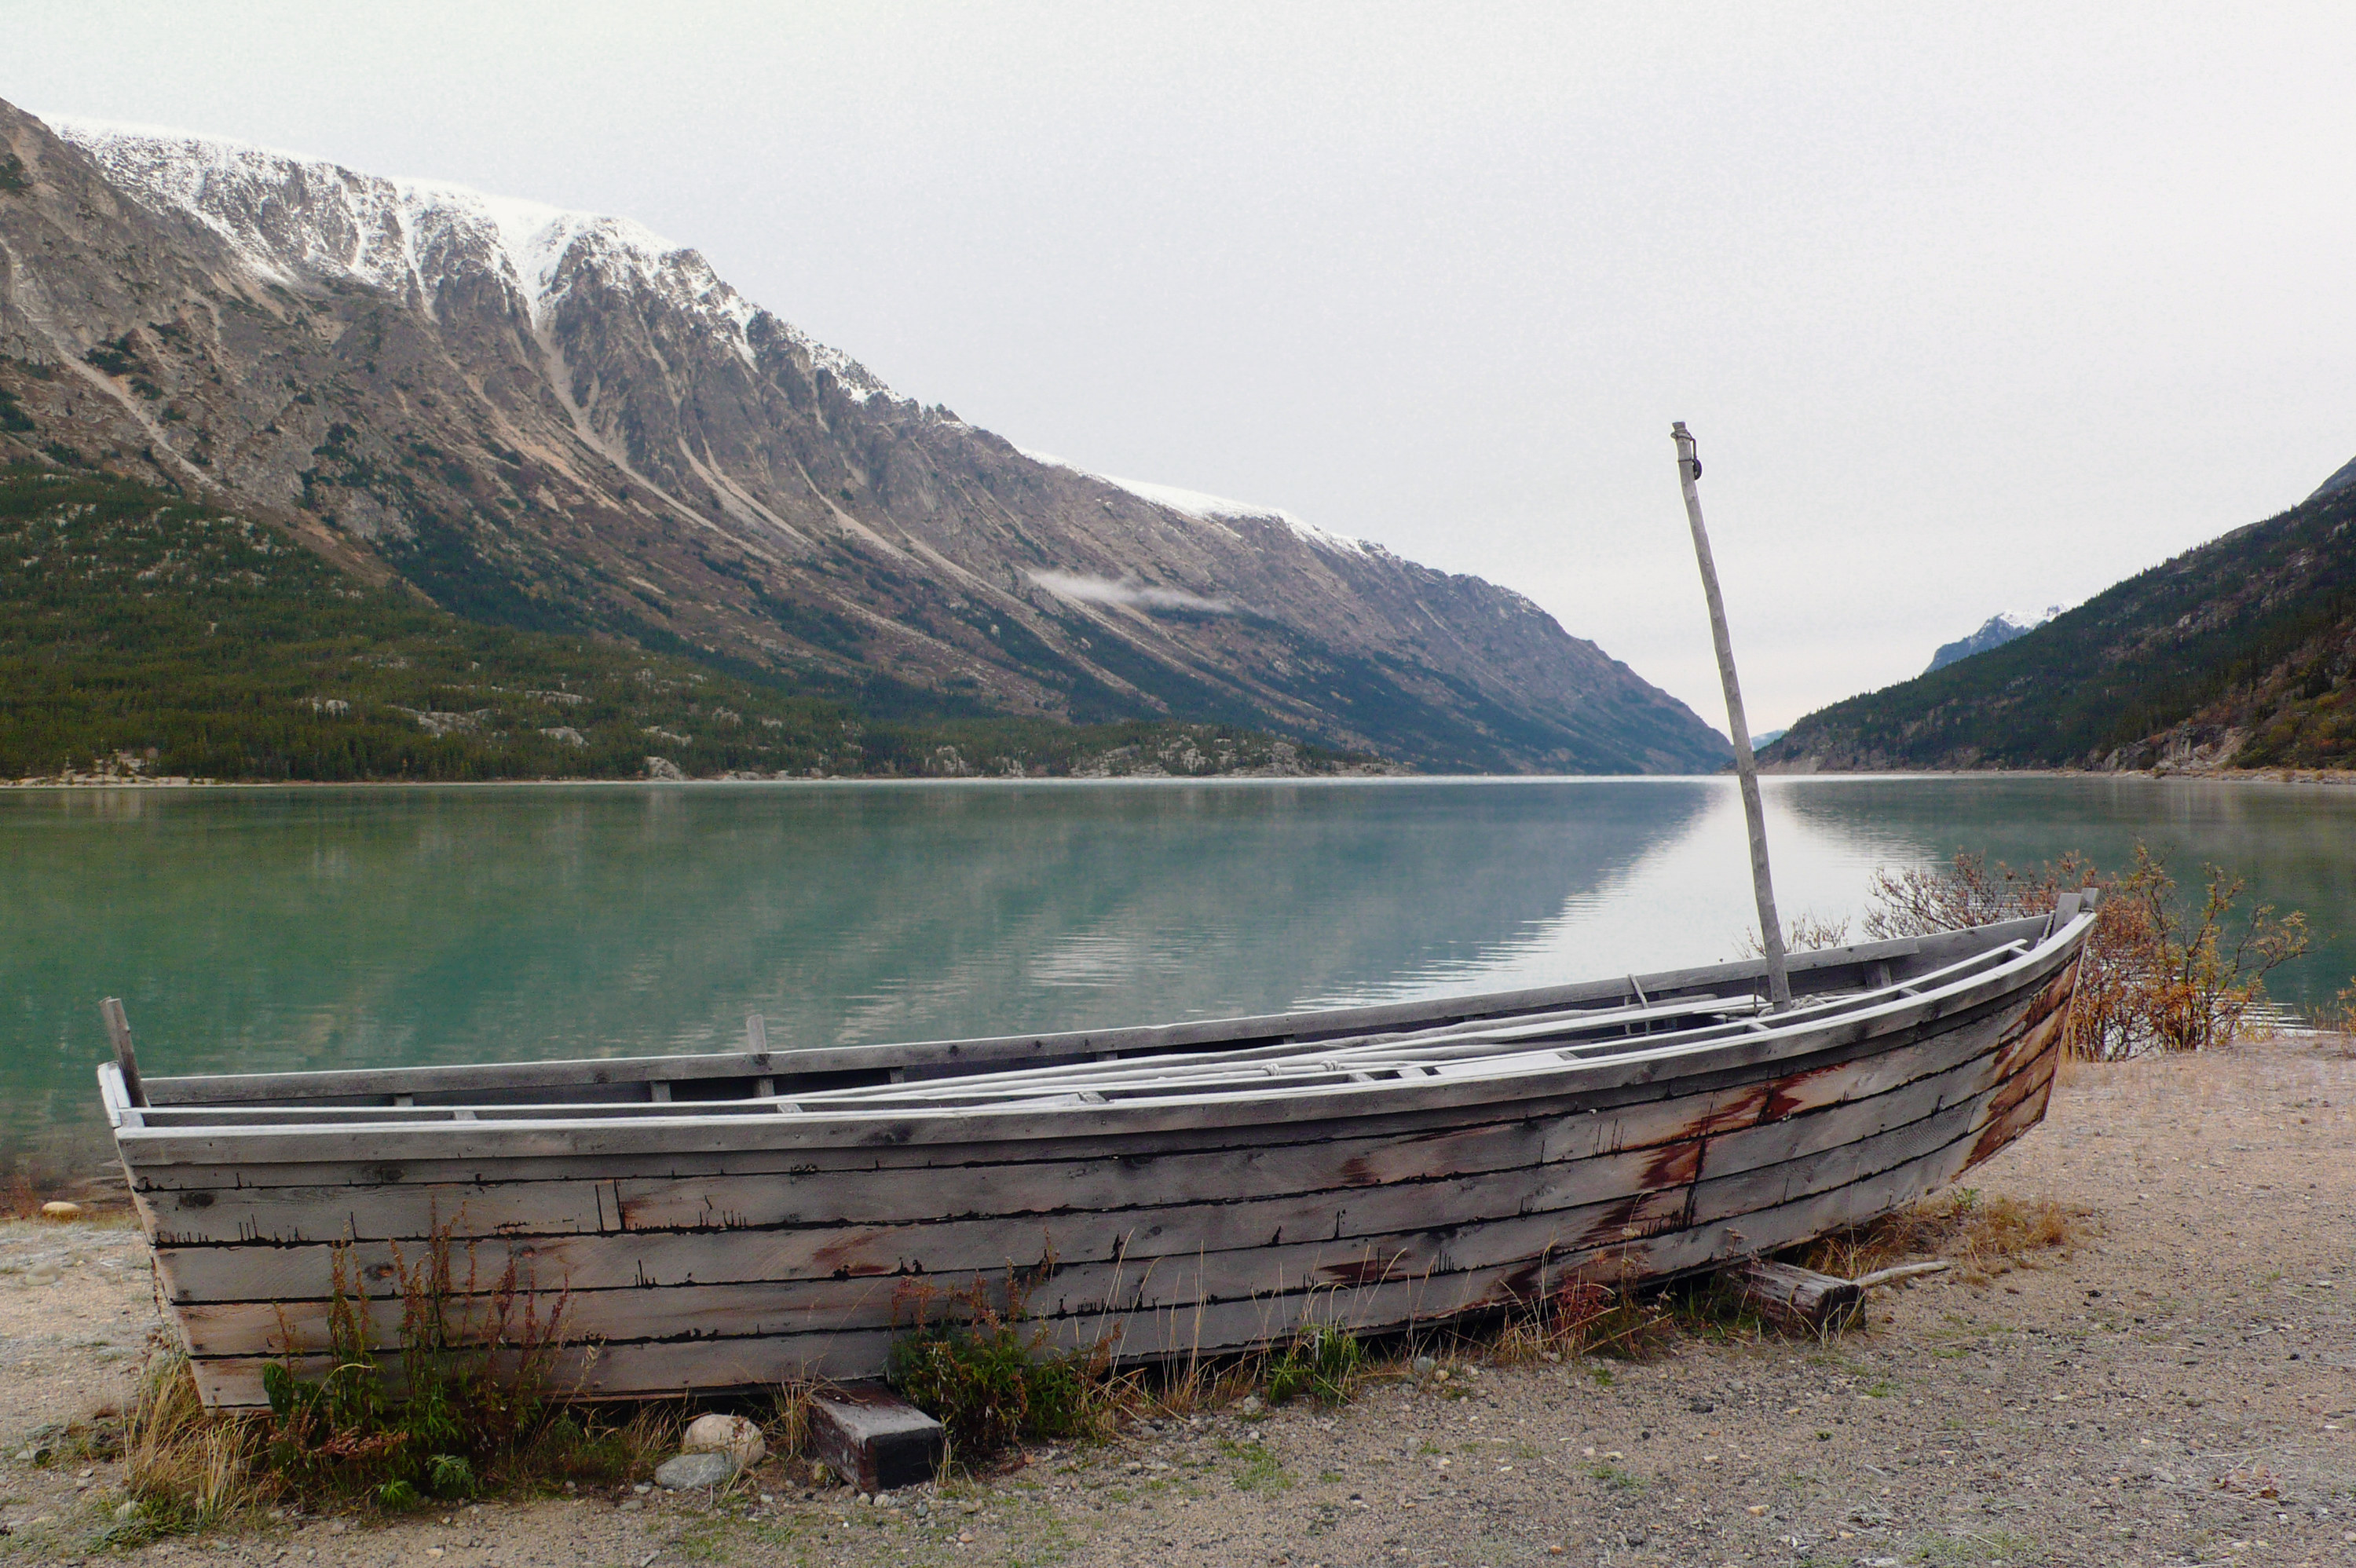 a boat next to the lake